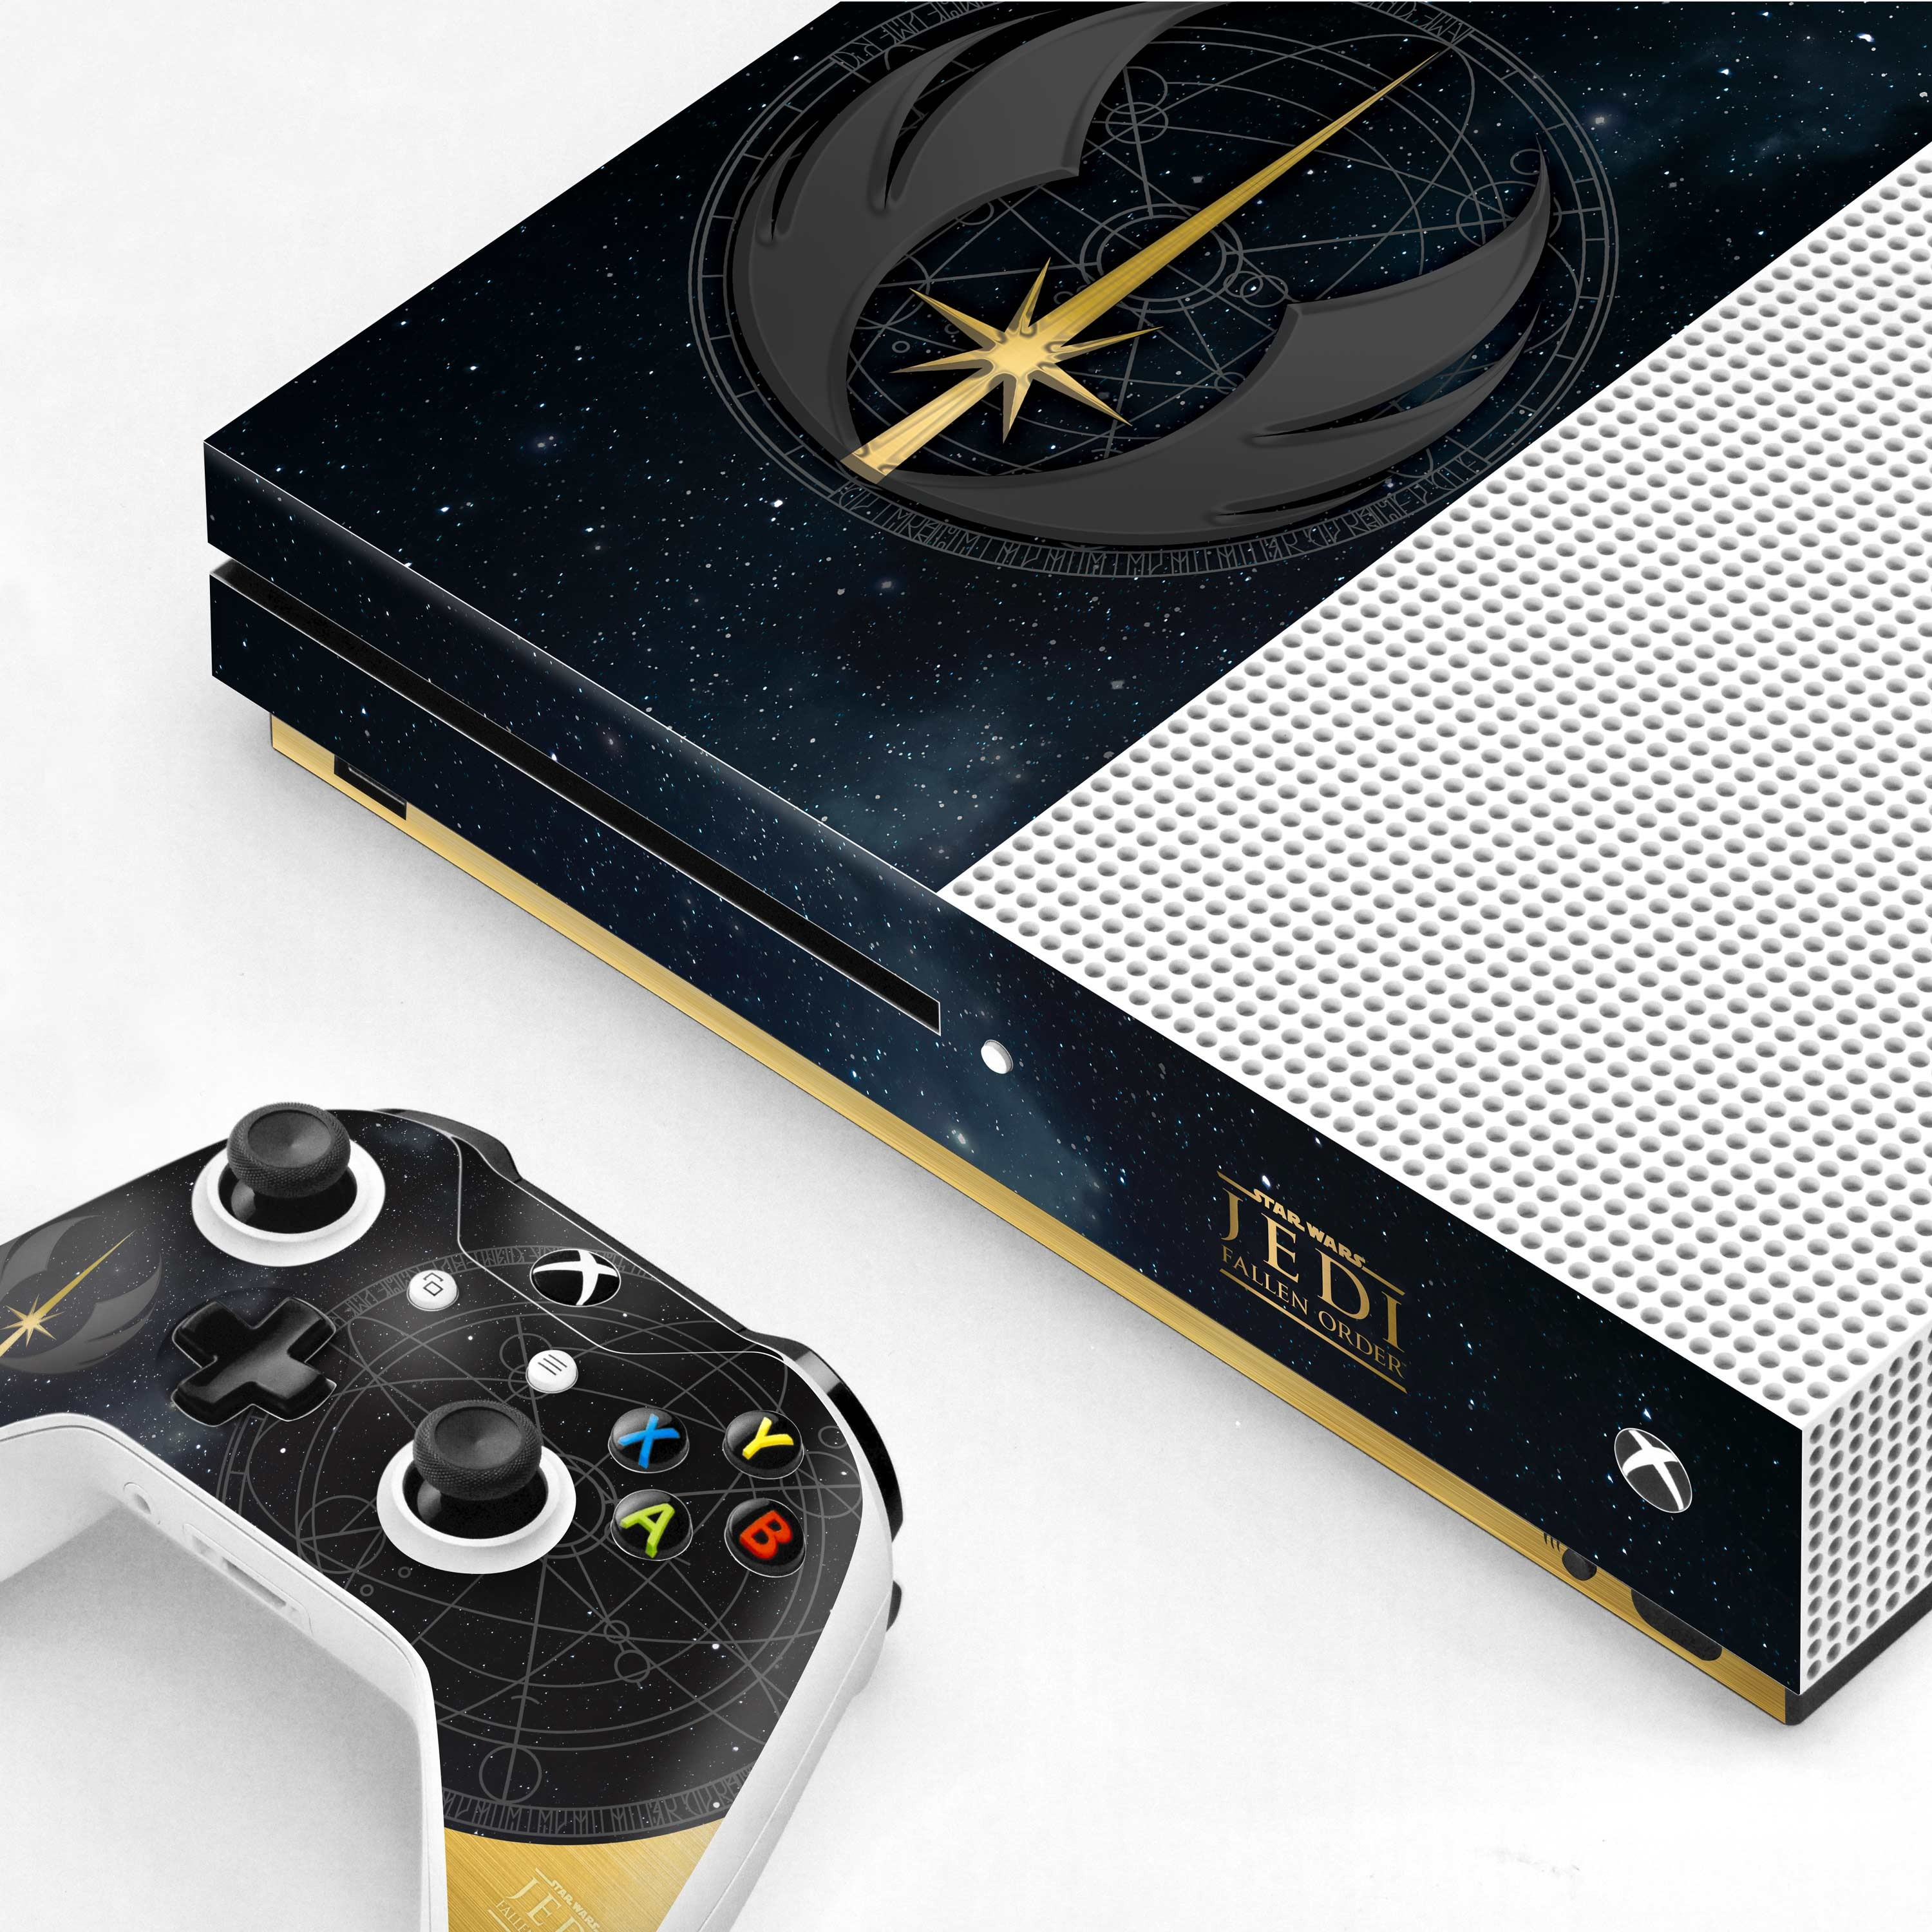 Xbox One S Console and Controller Skin with a Star Wars Fallen Order Jedi Starfield Design, Image 1